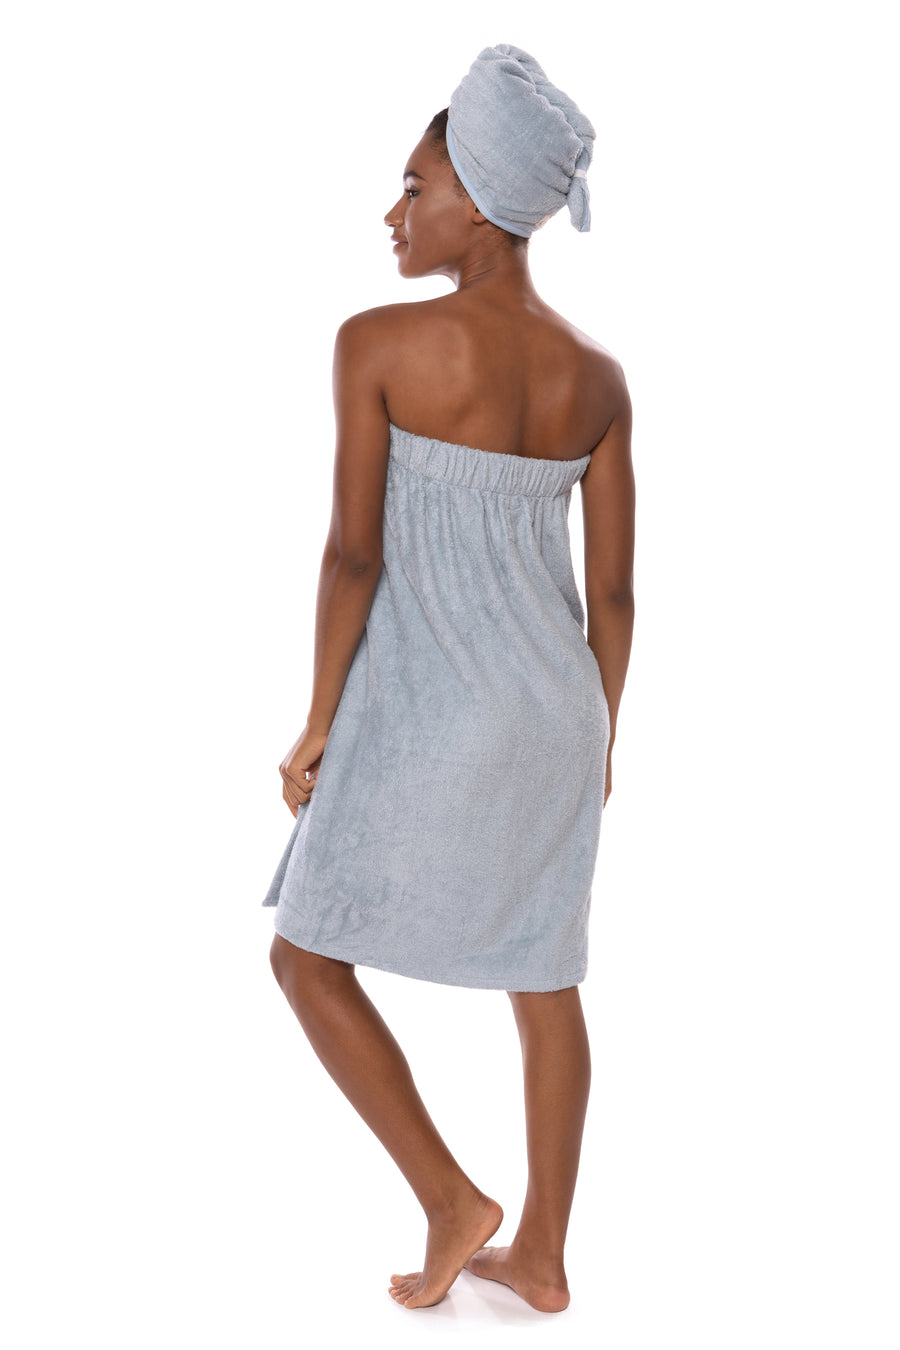 The Waterfall - Women's Bamboo Viscose Spa Wrap - TexereSilk